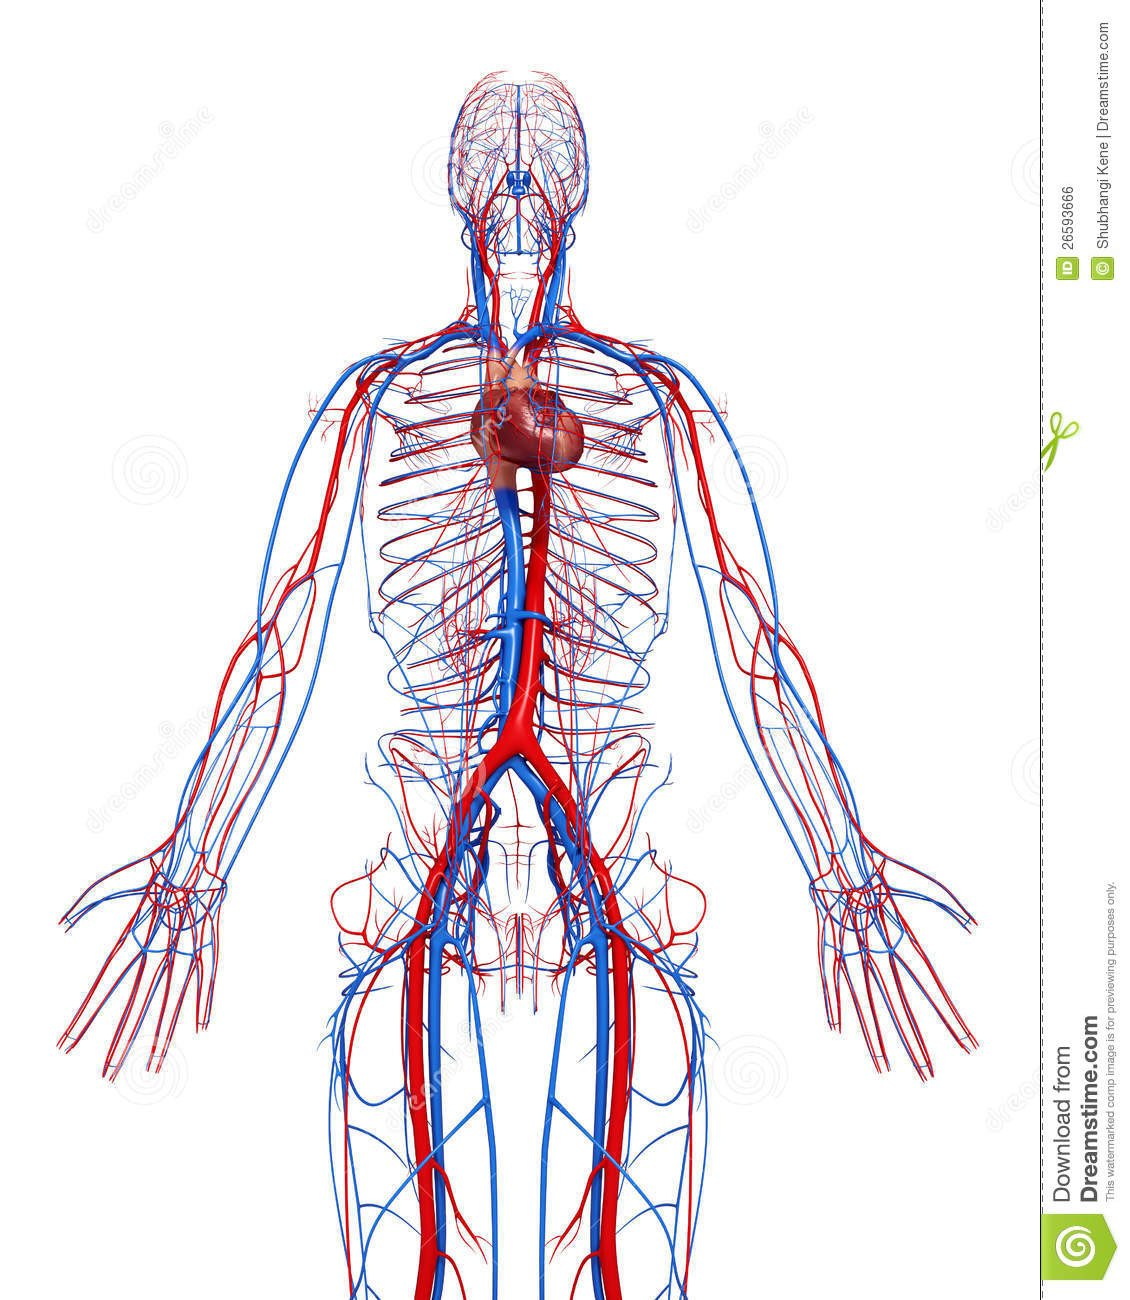 Circulatory System Coloring Worksheet Circulatory System Male with Heart Stock Illustration